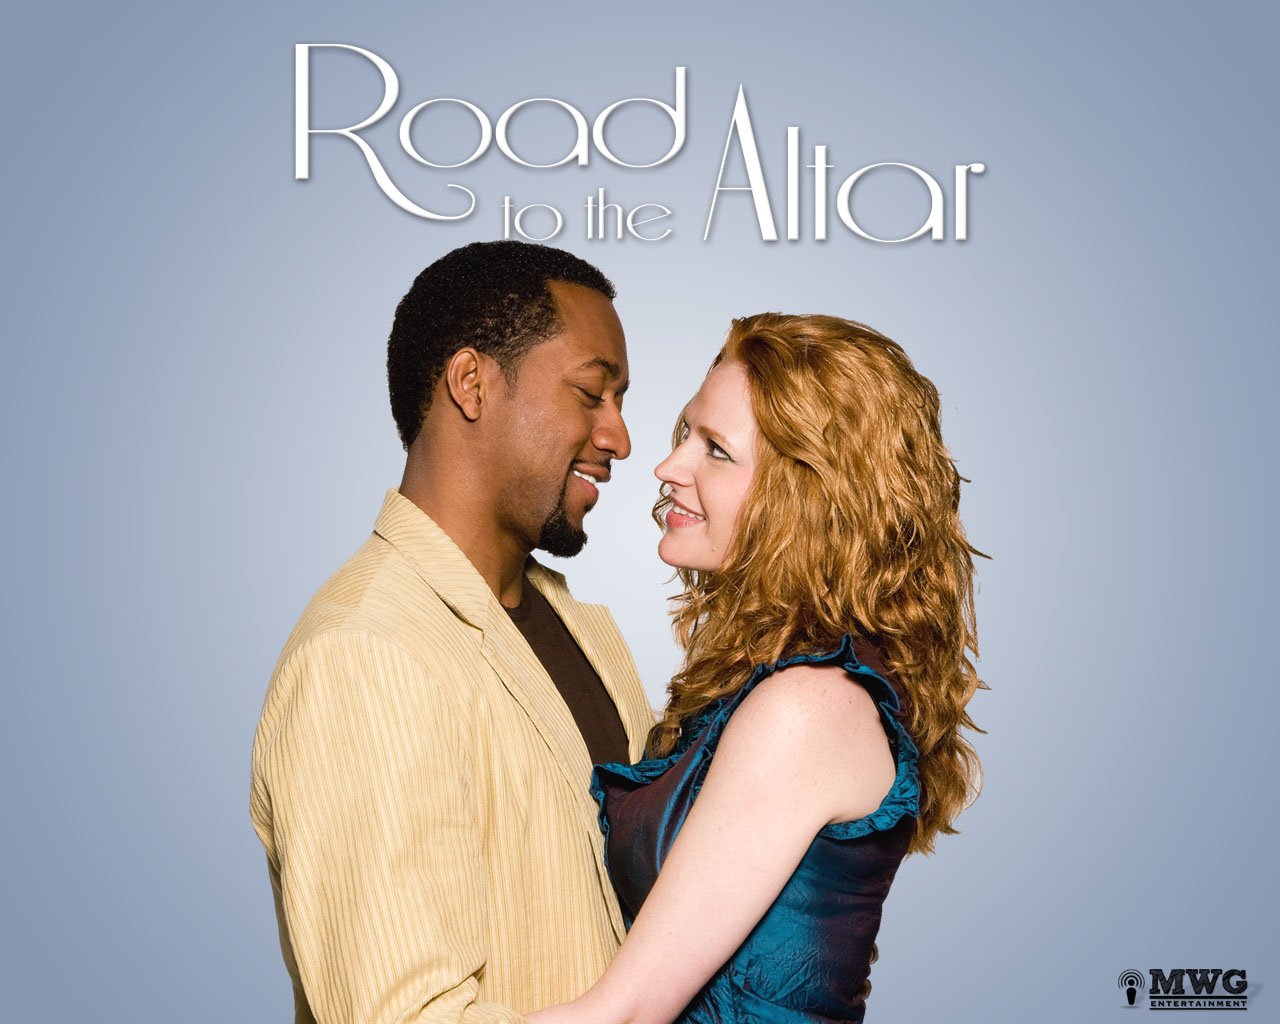 Road to the Altar - Jaleel White and Leyna Juliet Weber